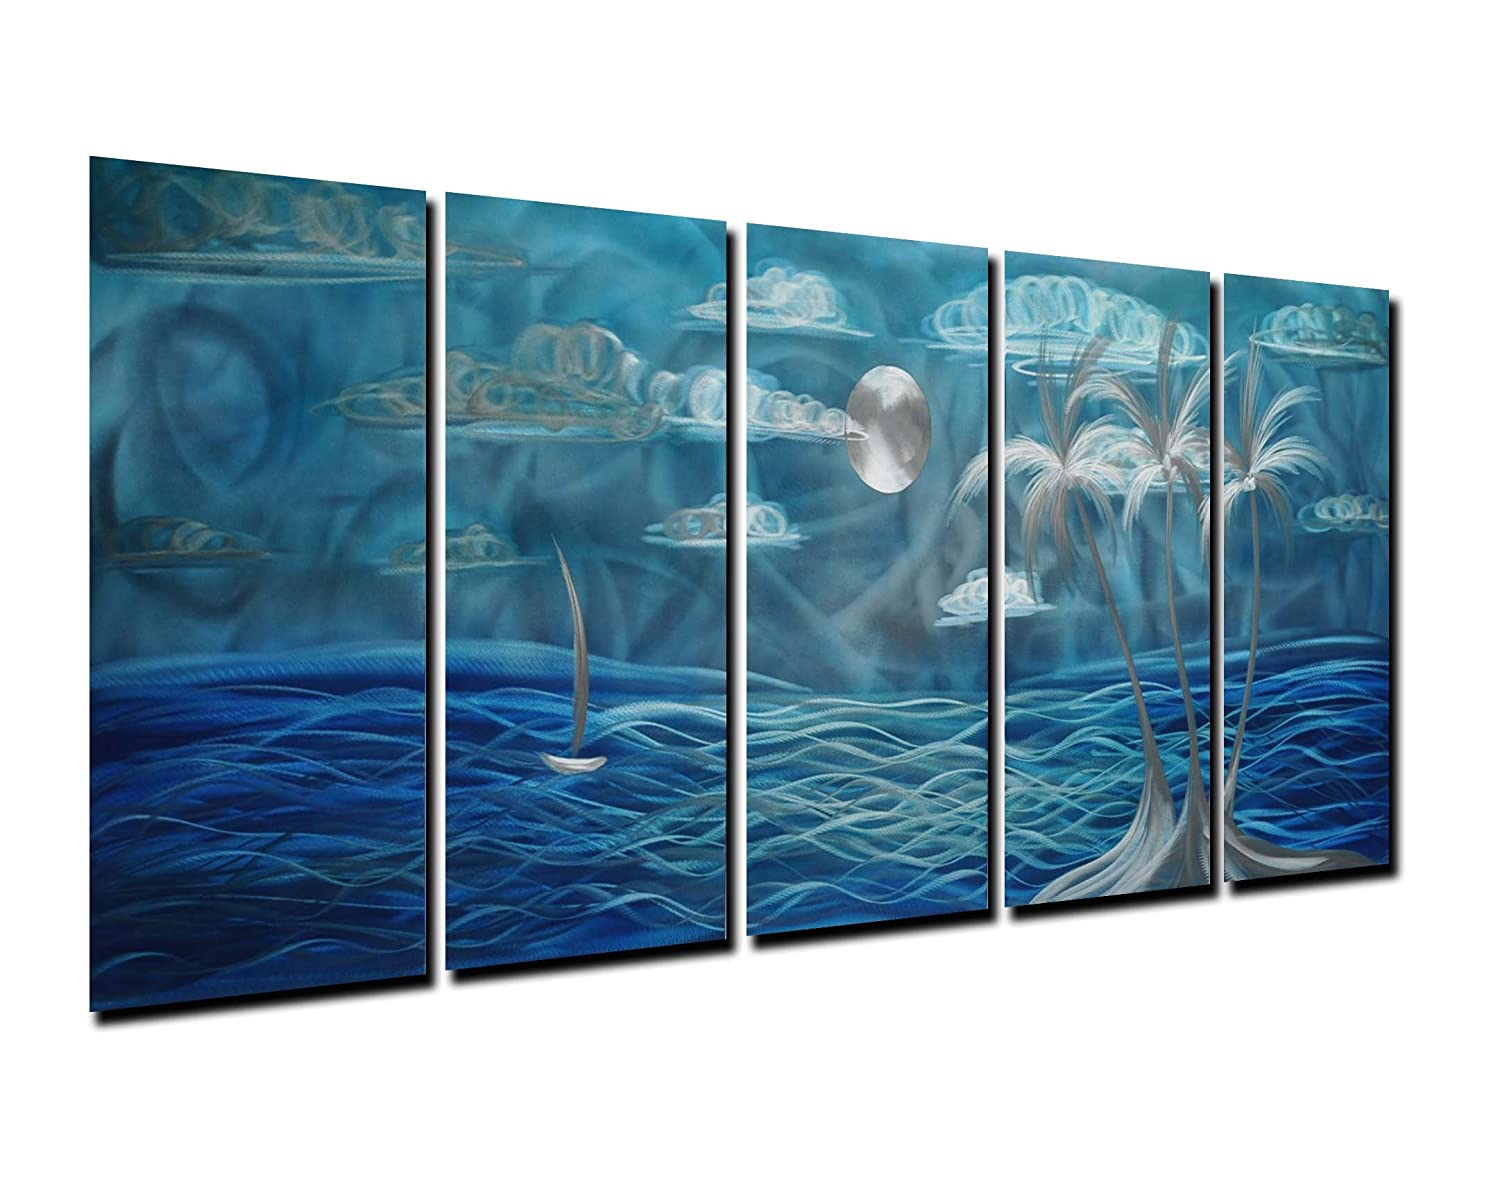 Amazon com winpeak pure handmade metal wall art home decor blue seascape painting abstract modern sculpture contemporary decorative 5 panels aluminum